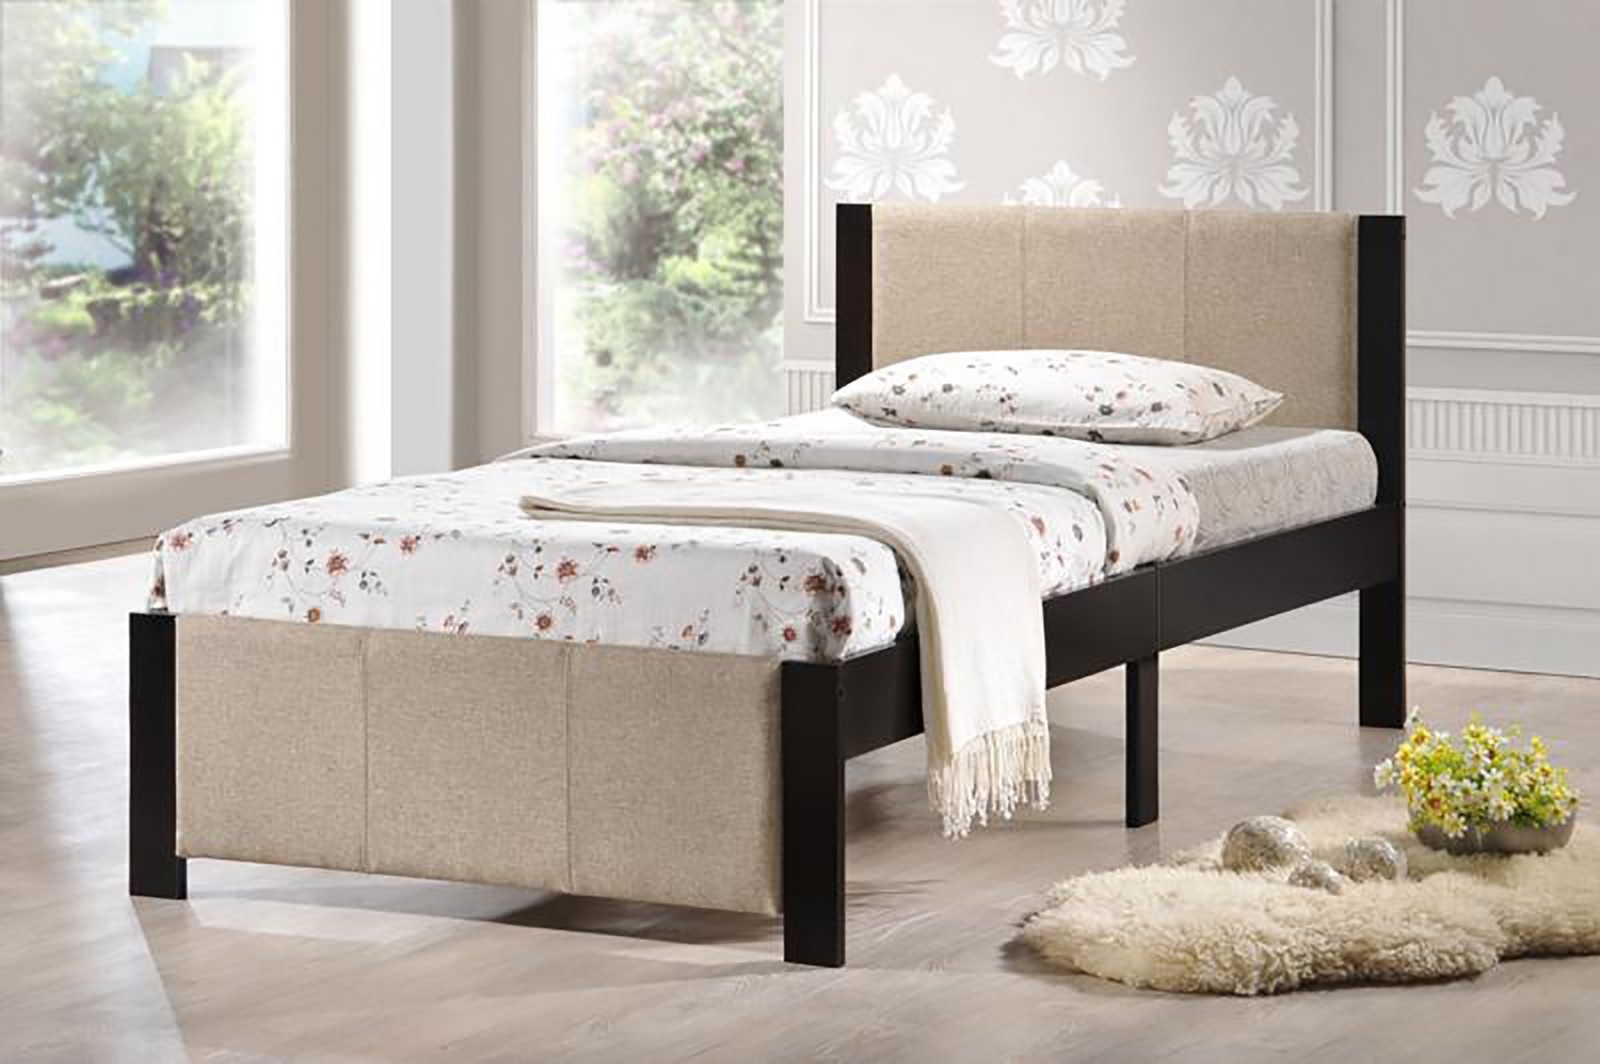 Hillsdale Ventura Twin Bed - Espresso - Cream